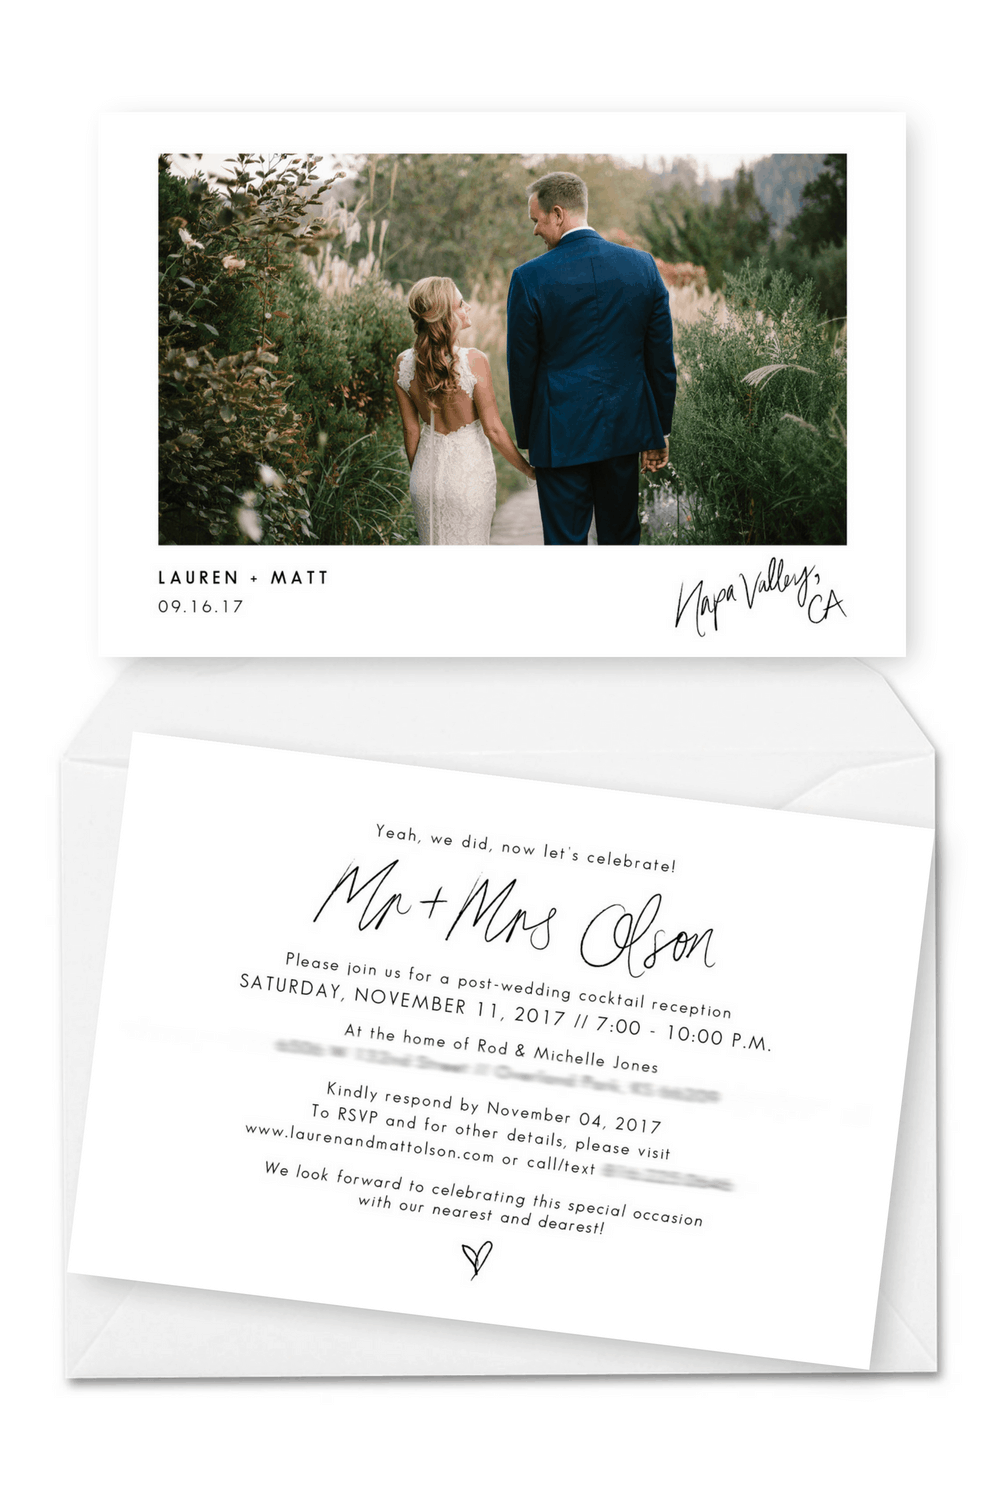 Wedding Announcement Cards and Elopement Invitations Ideas We Eloped We Tied The Knot